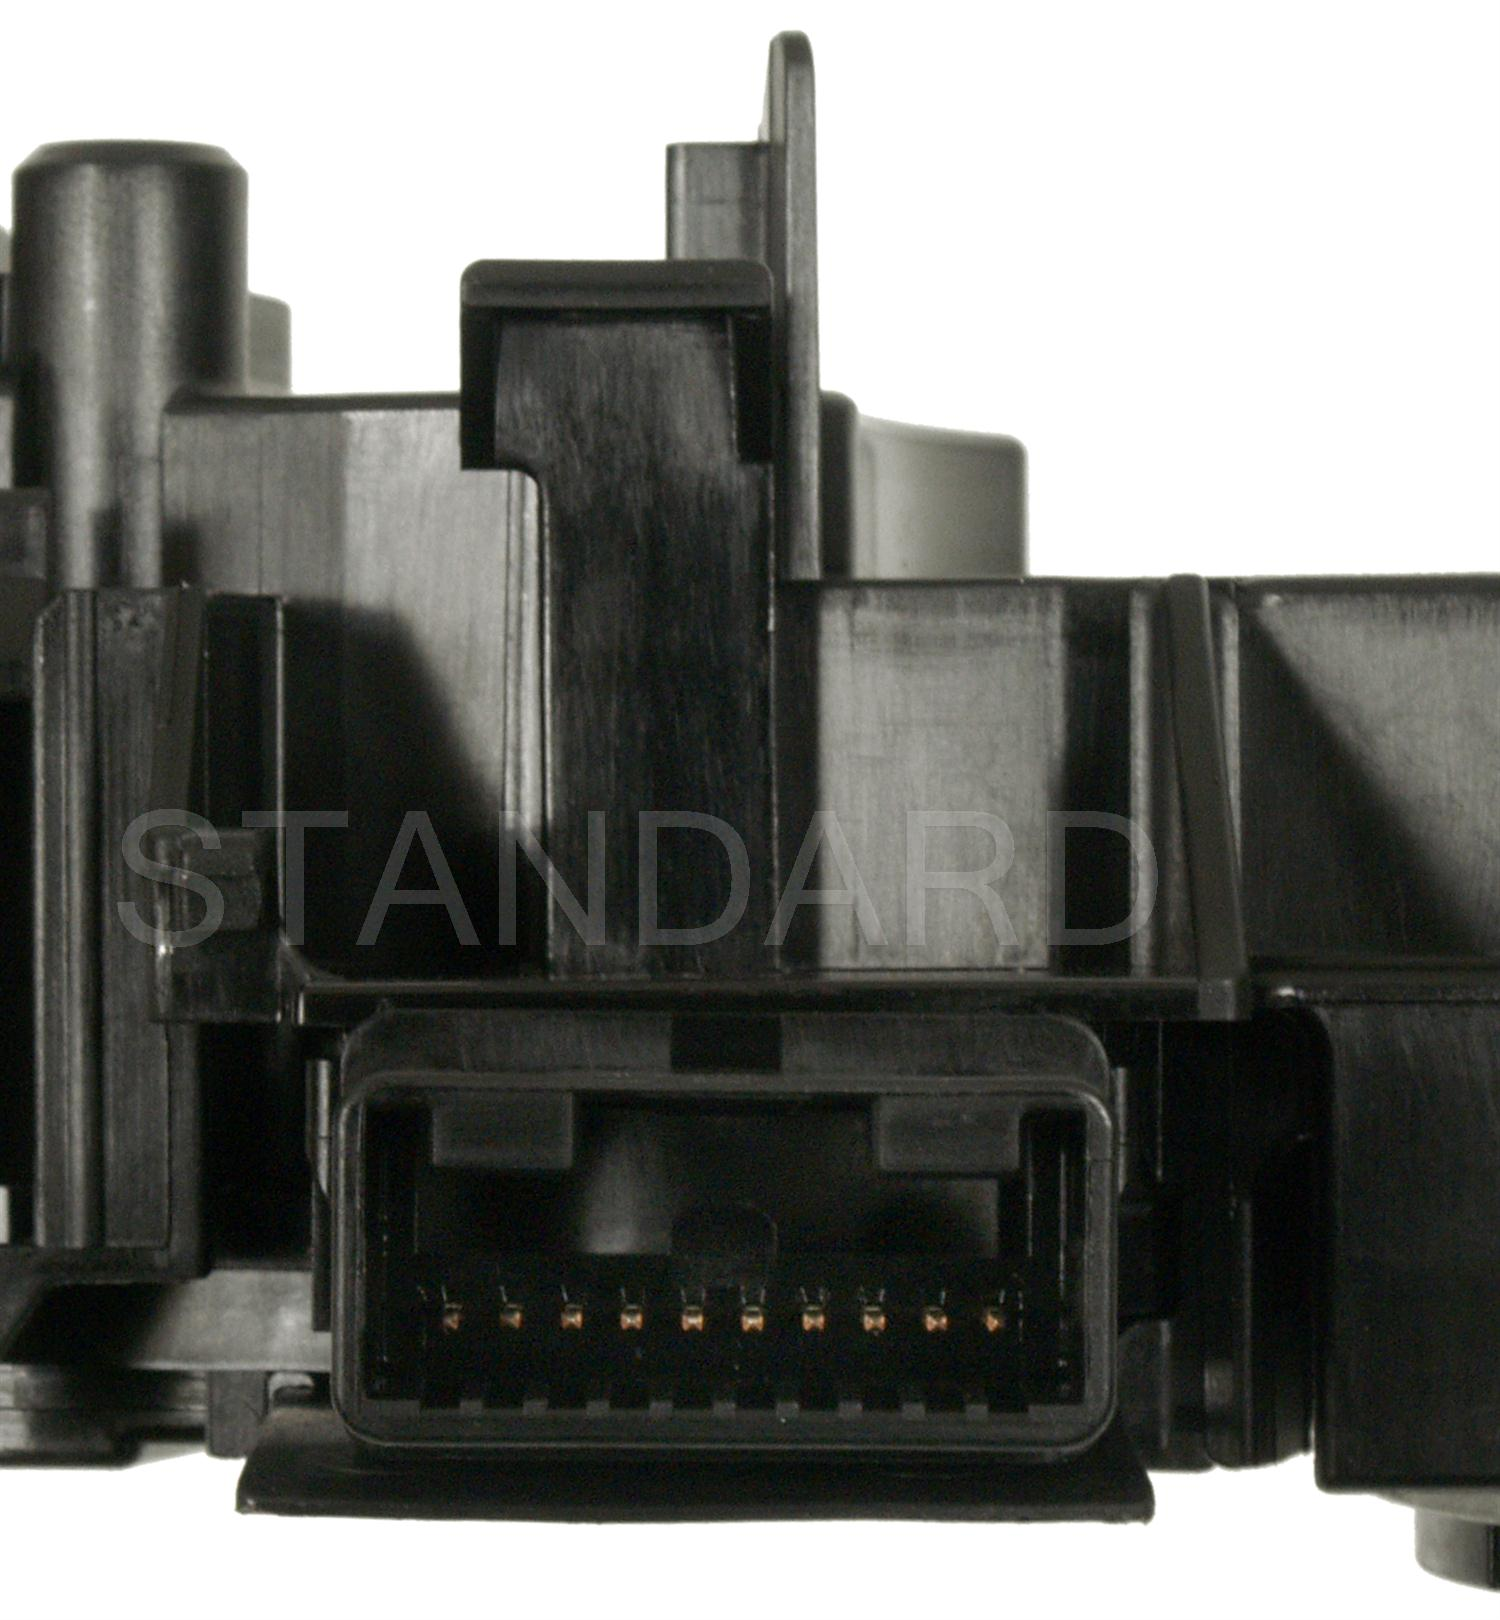 Standard Motor Products Cbs-1809 Combination Switch